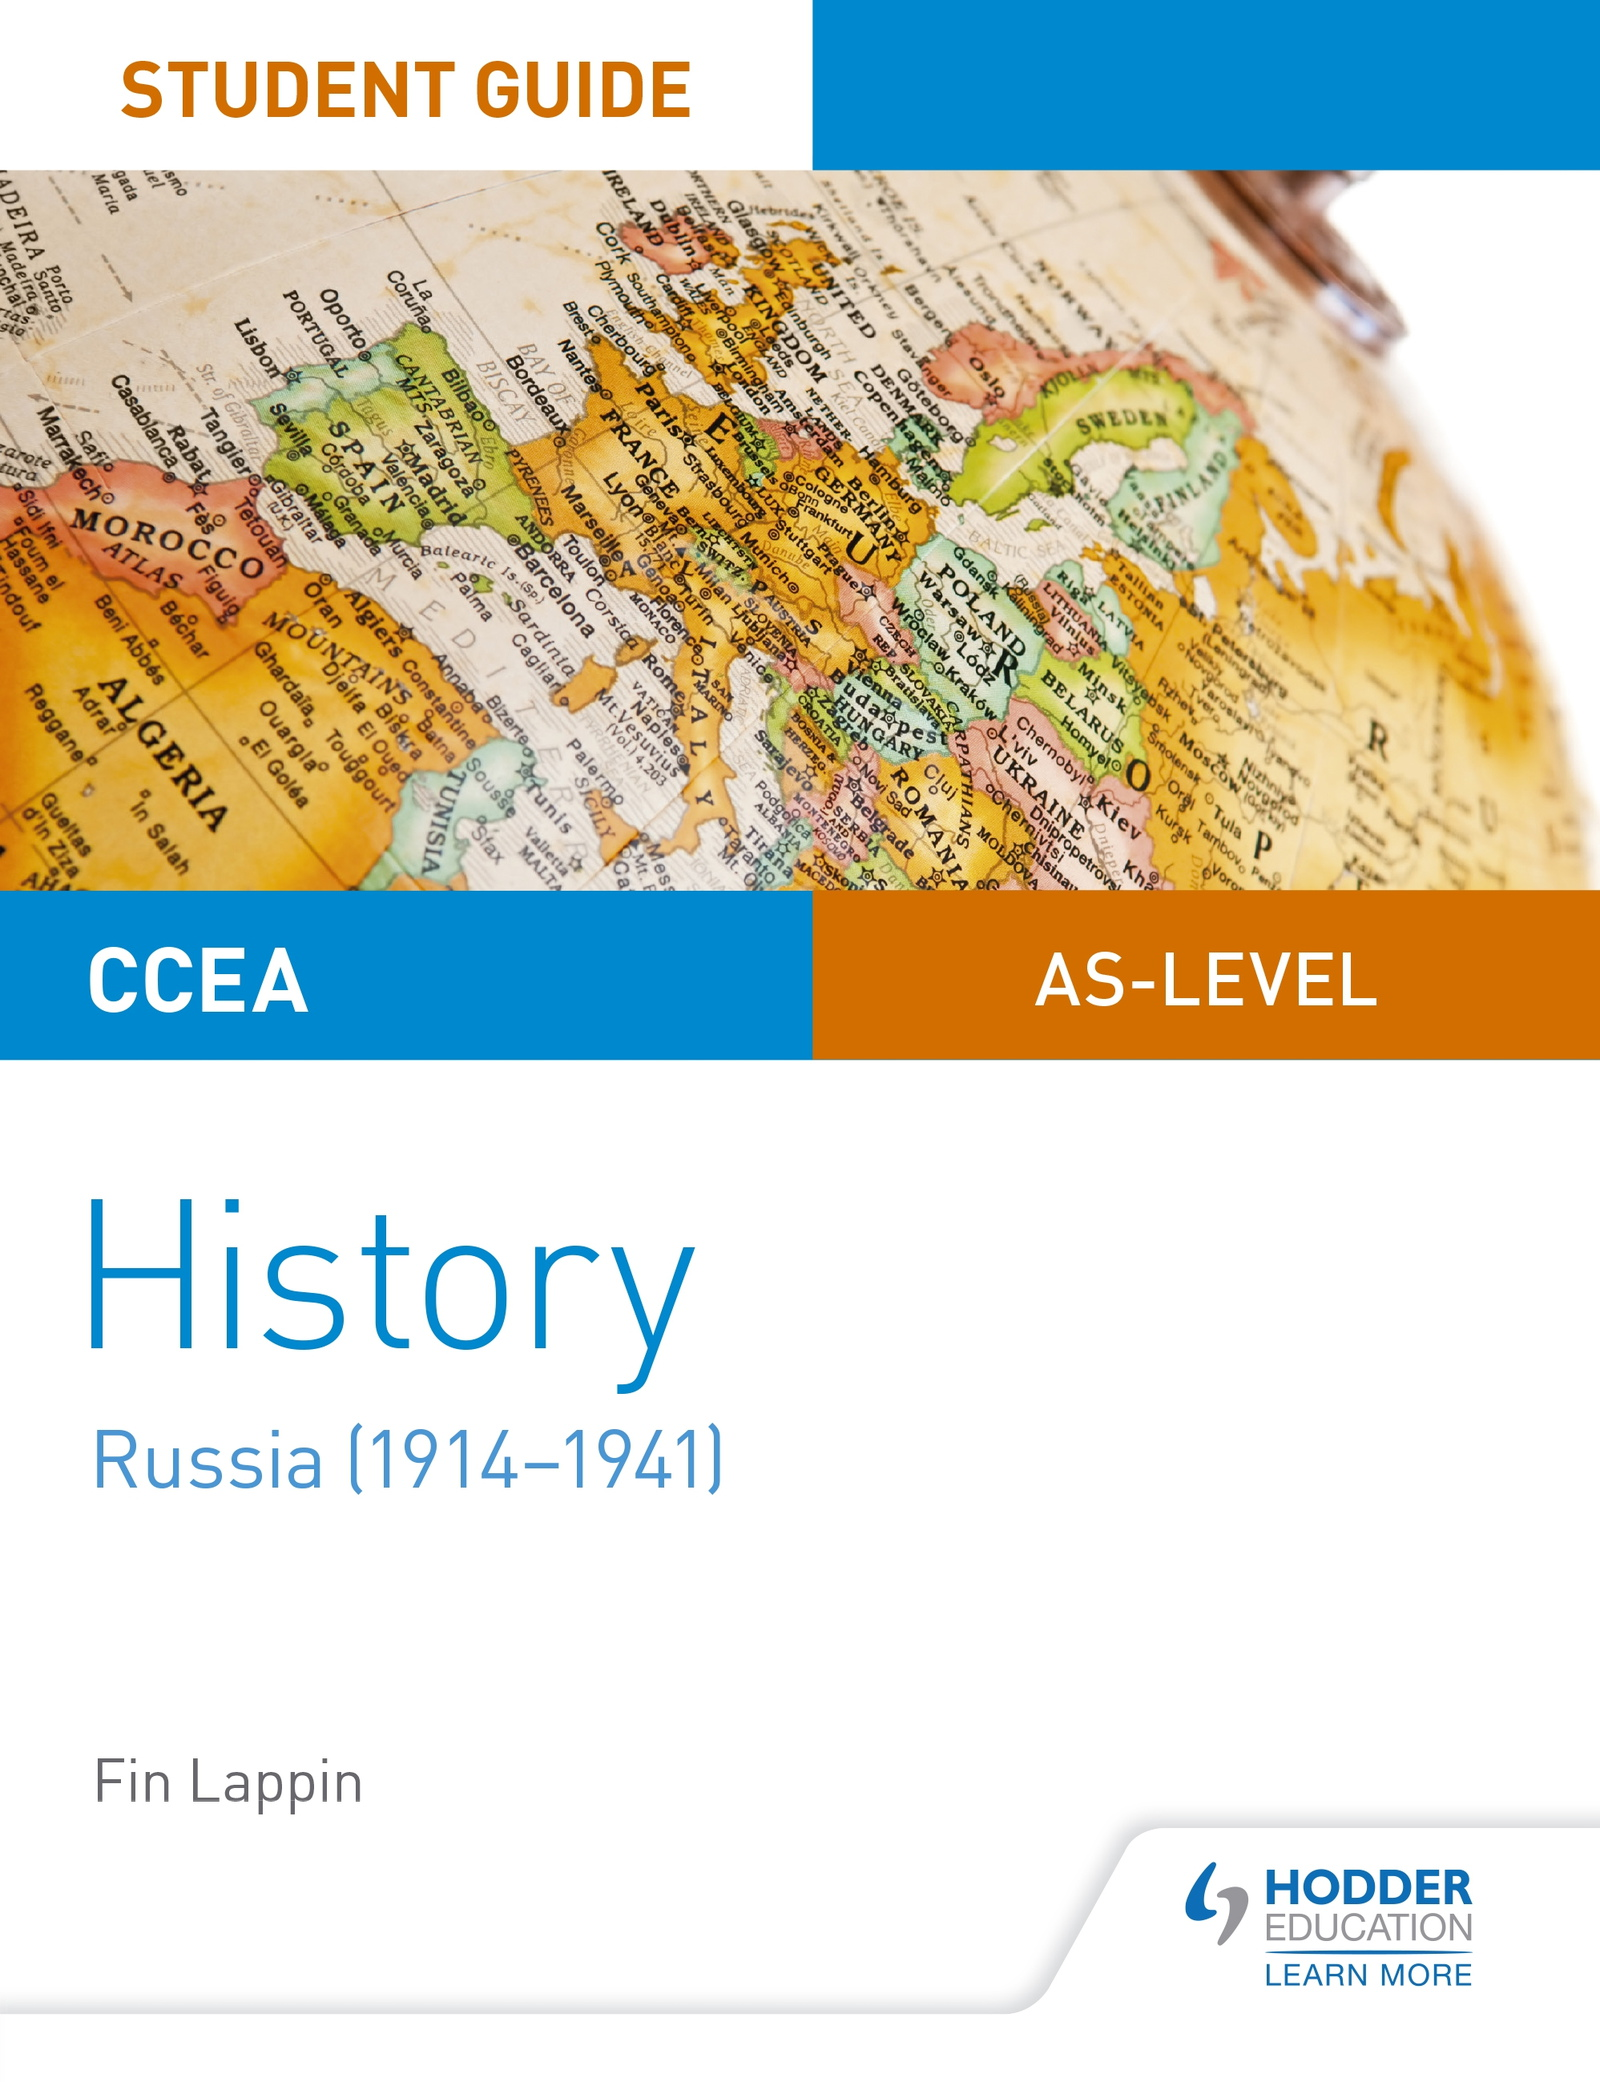 CCEA AS-level History Student Guide: Russia (1914-1941)